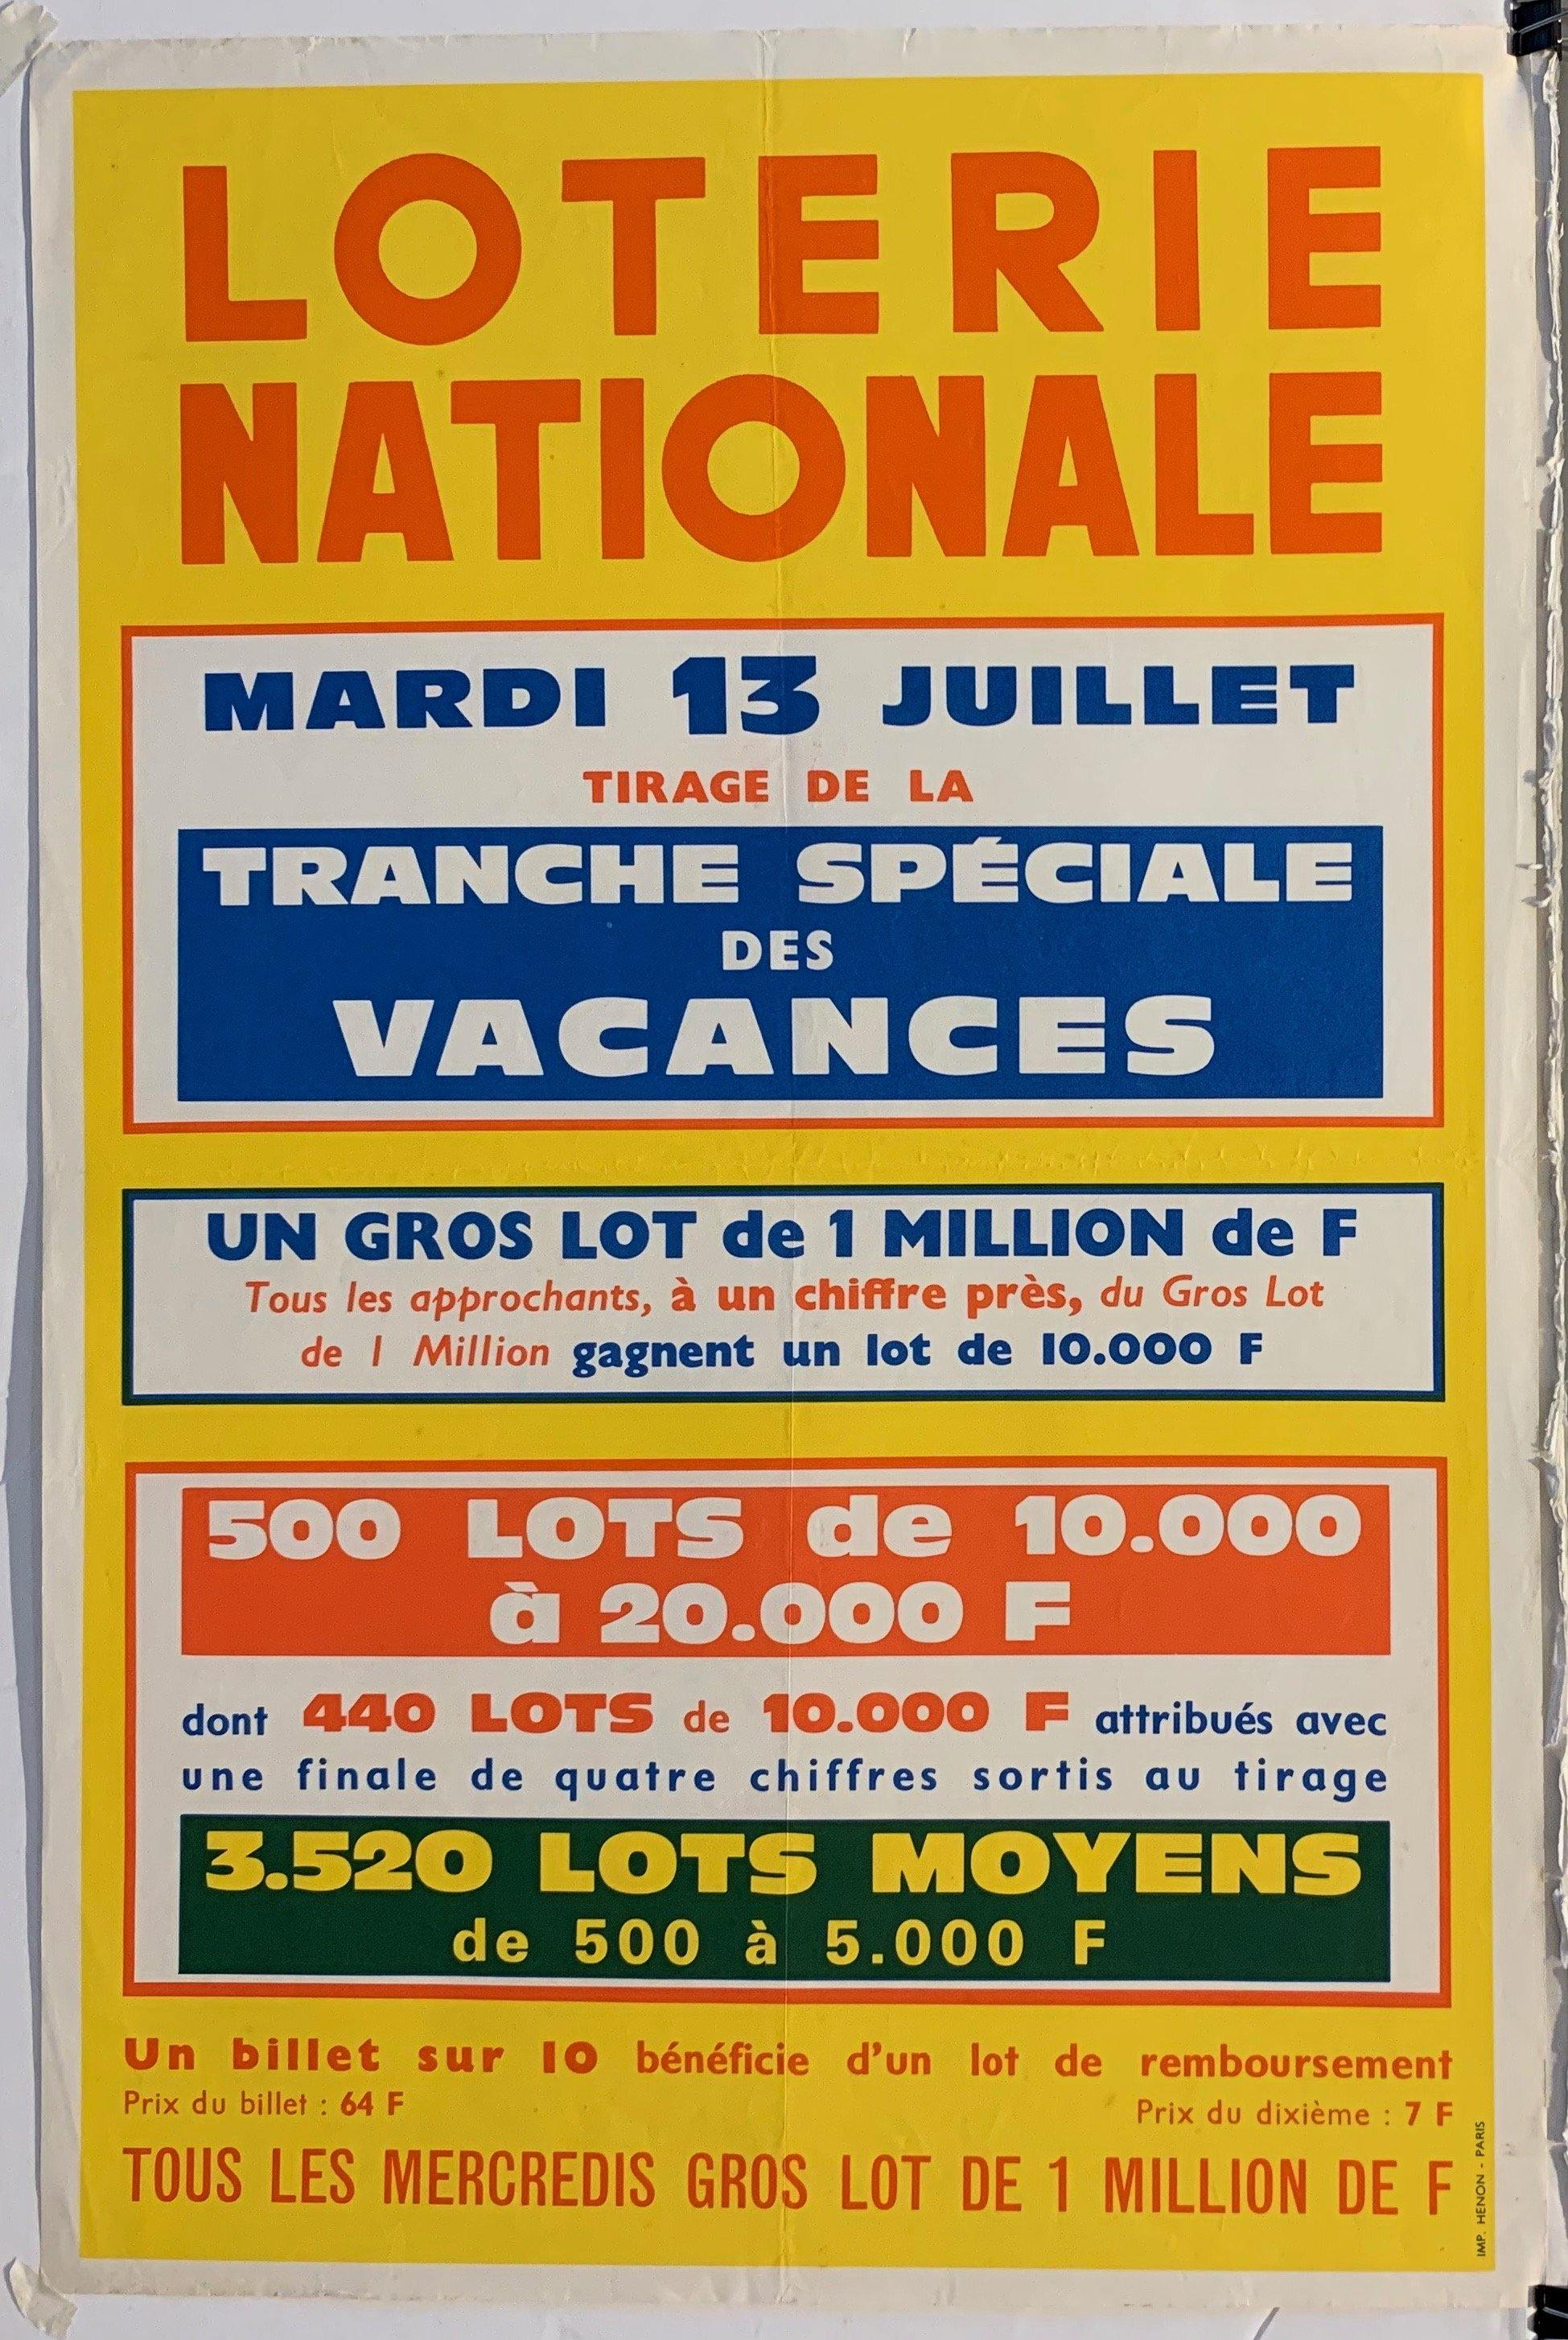 loterie nationale - Poster Museum